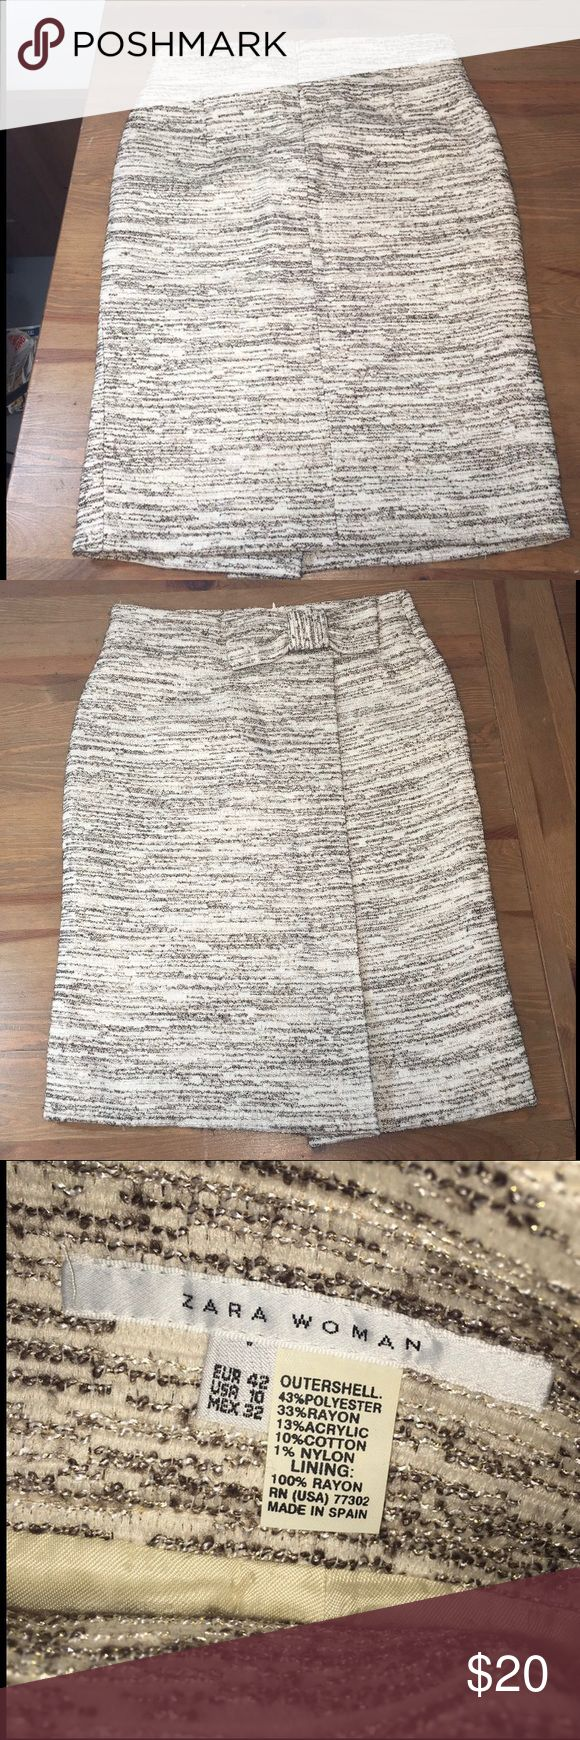 Zara Woman Dress - Size: 10 Guaranteed authentic item and a must have item! We are unable to model items or take sales to PP. Willing to negotiate using the offer button. No trades. Happy Poshing! Zara Skirts